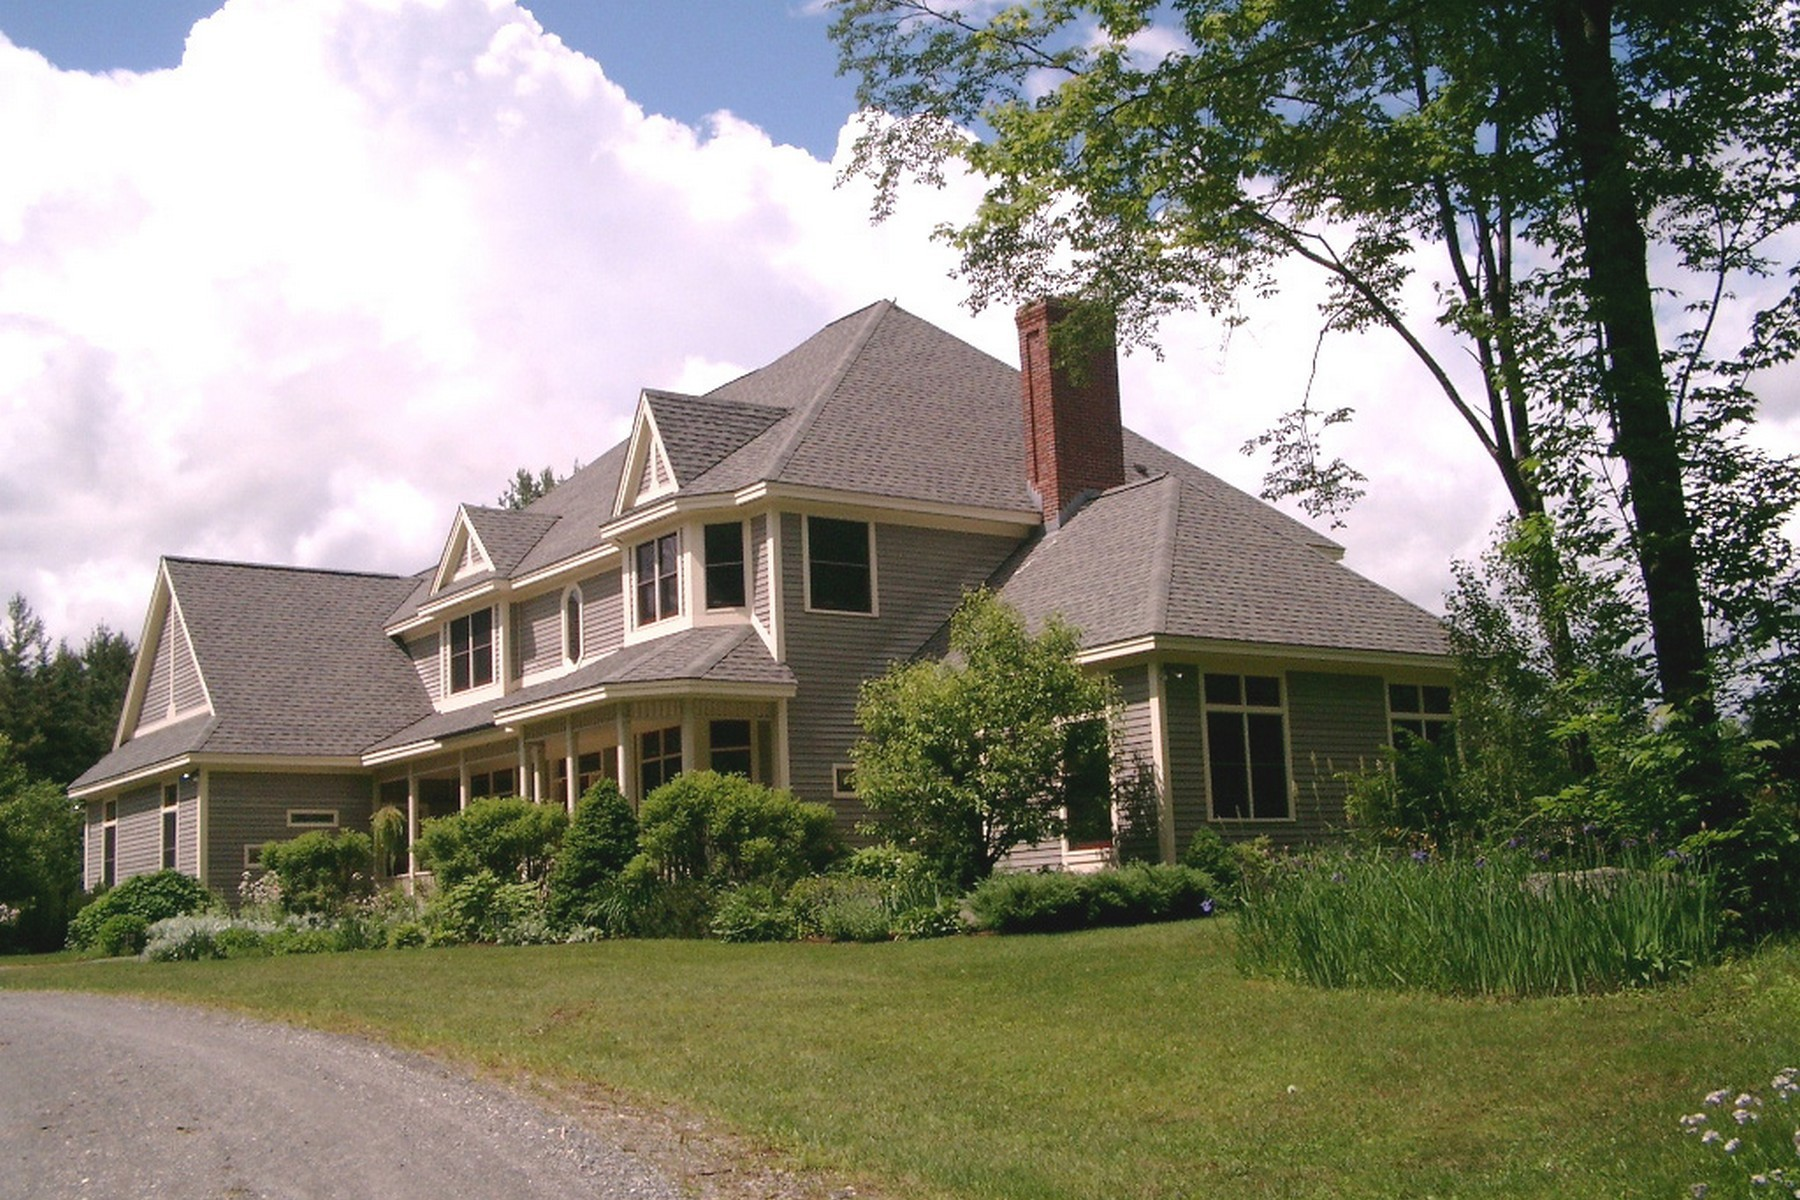 278 Lawrence Hill Rd, Weston, VT 05161